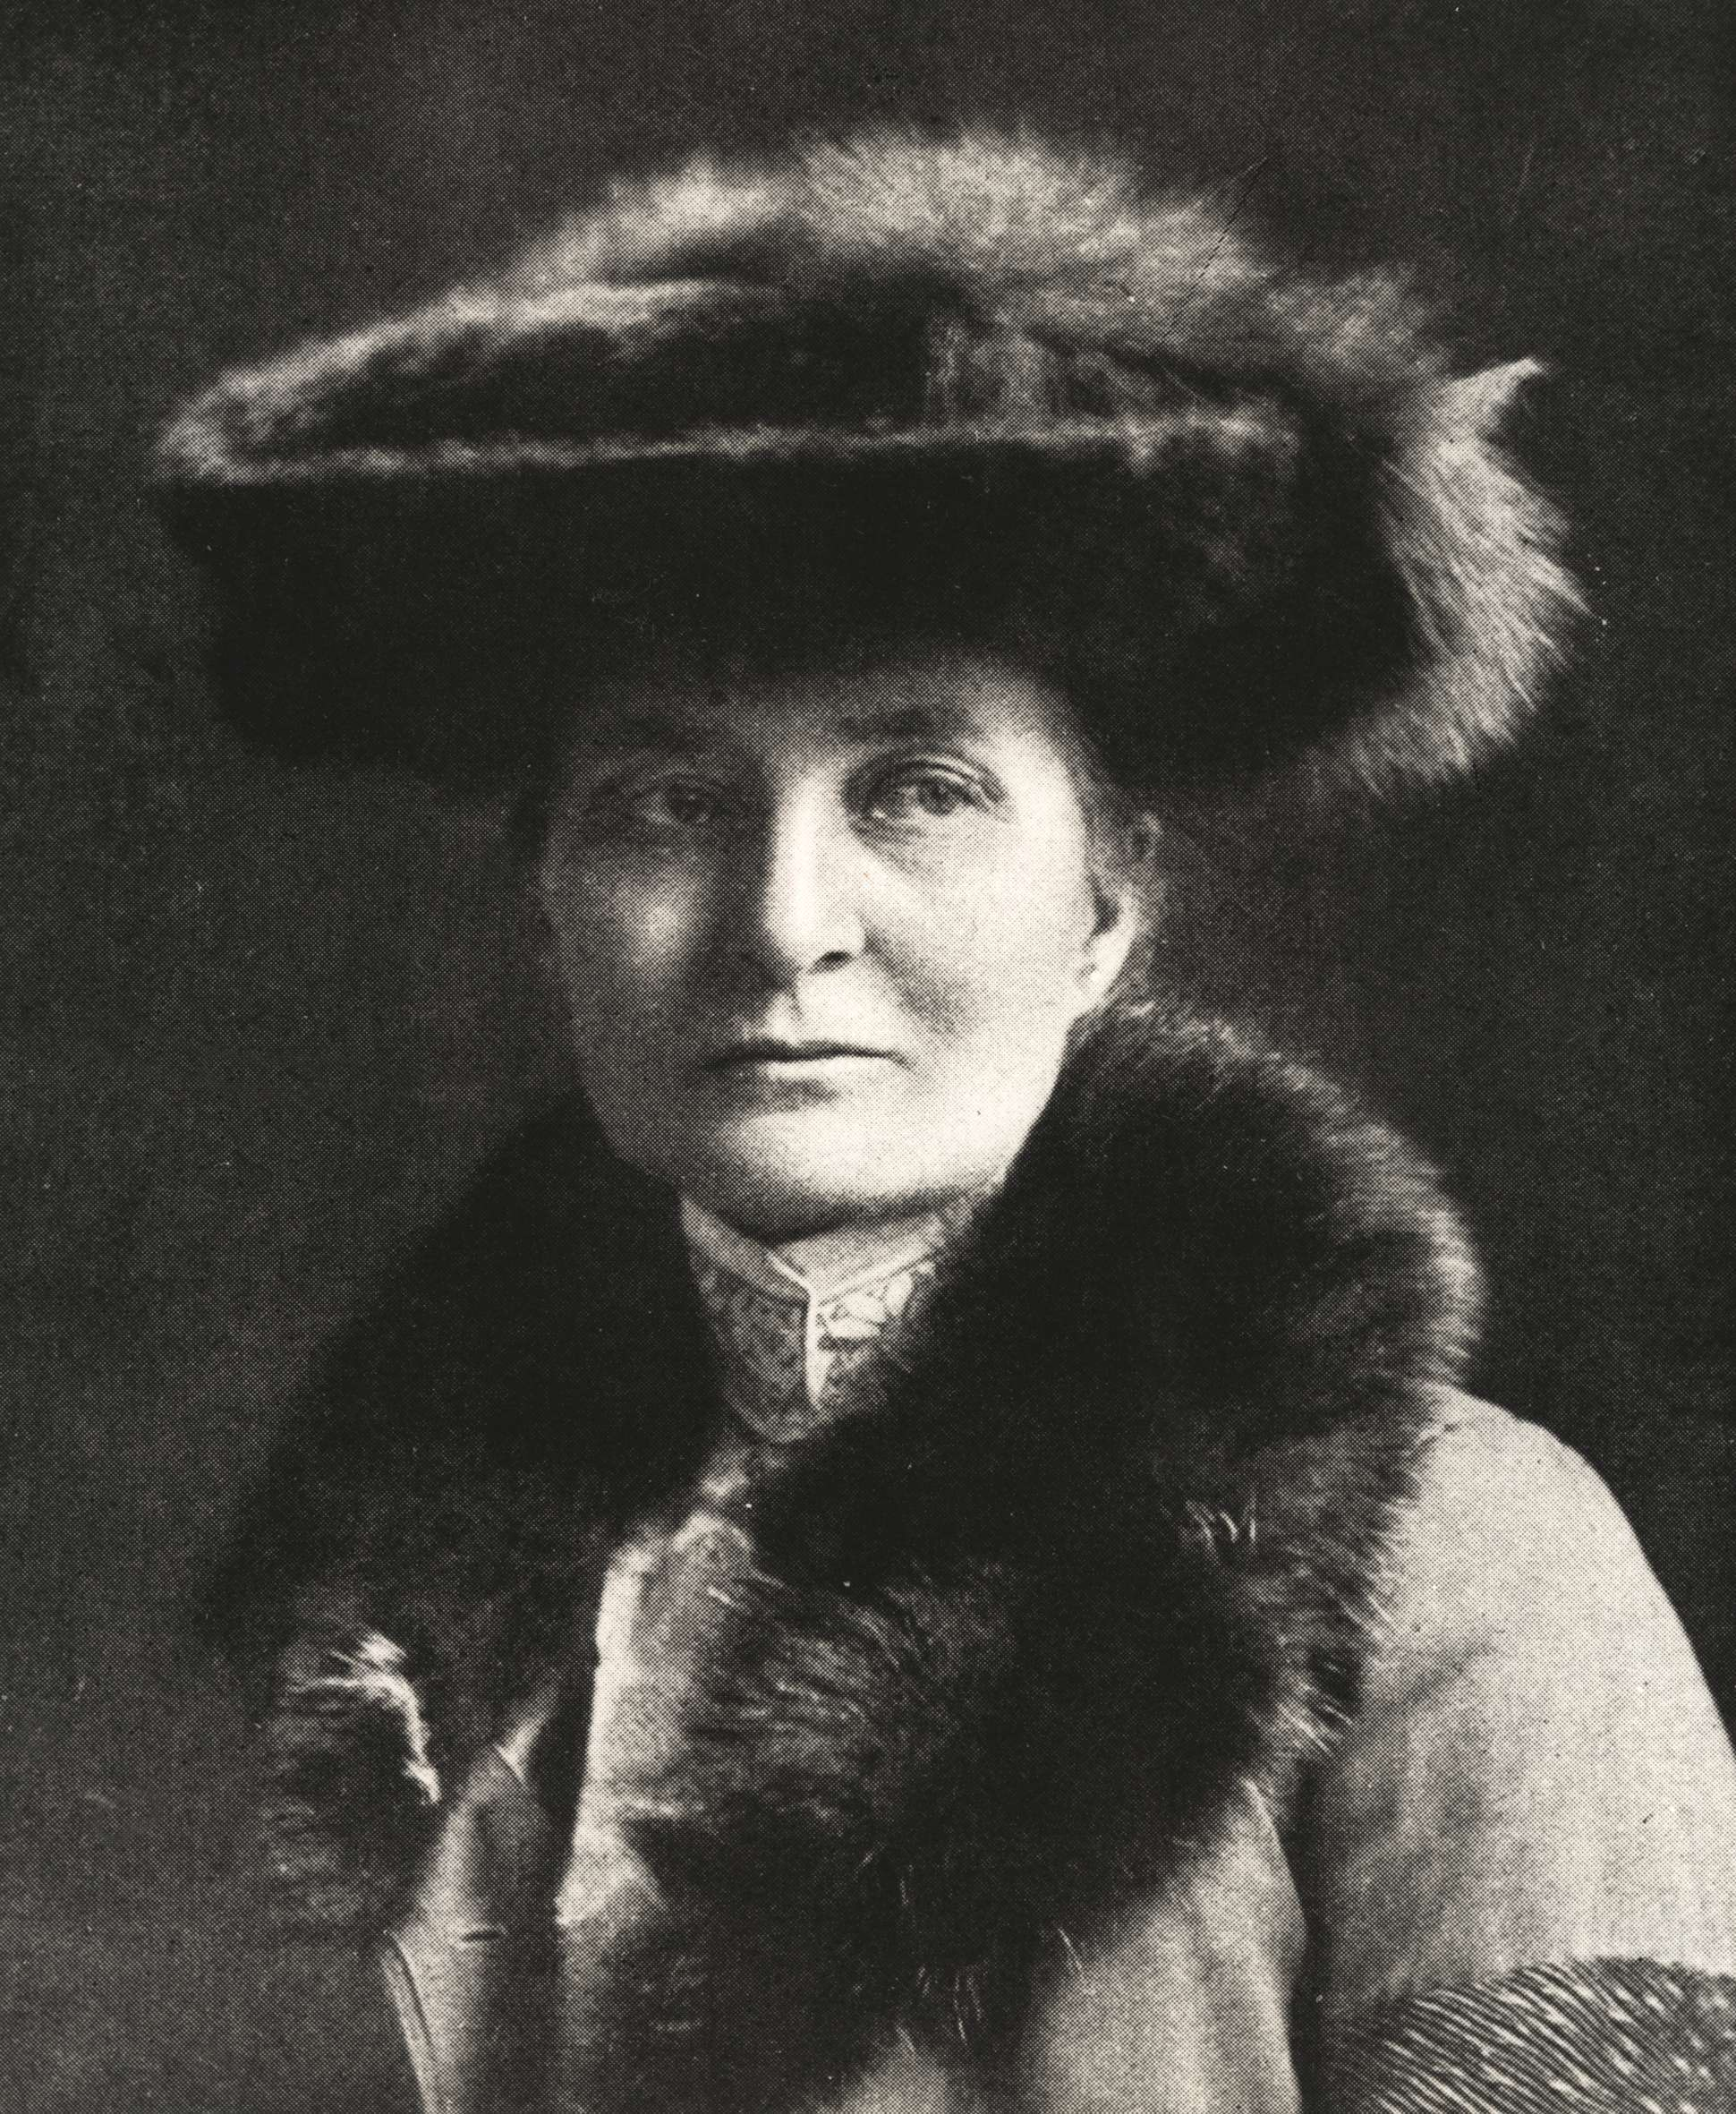 Selma Giöbel, circa 1910-1915. Photographer unknown (Nordiska museet archives, NMA.0035606)